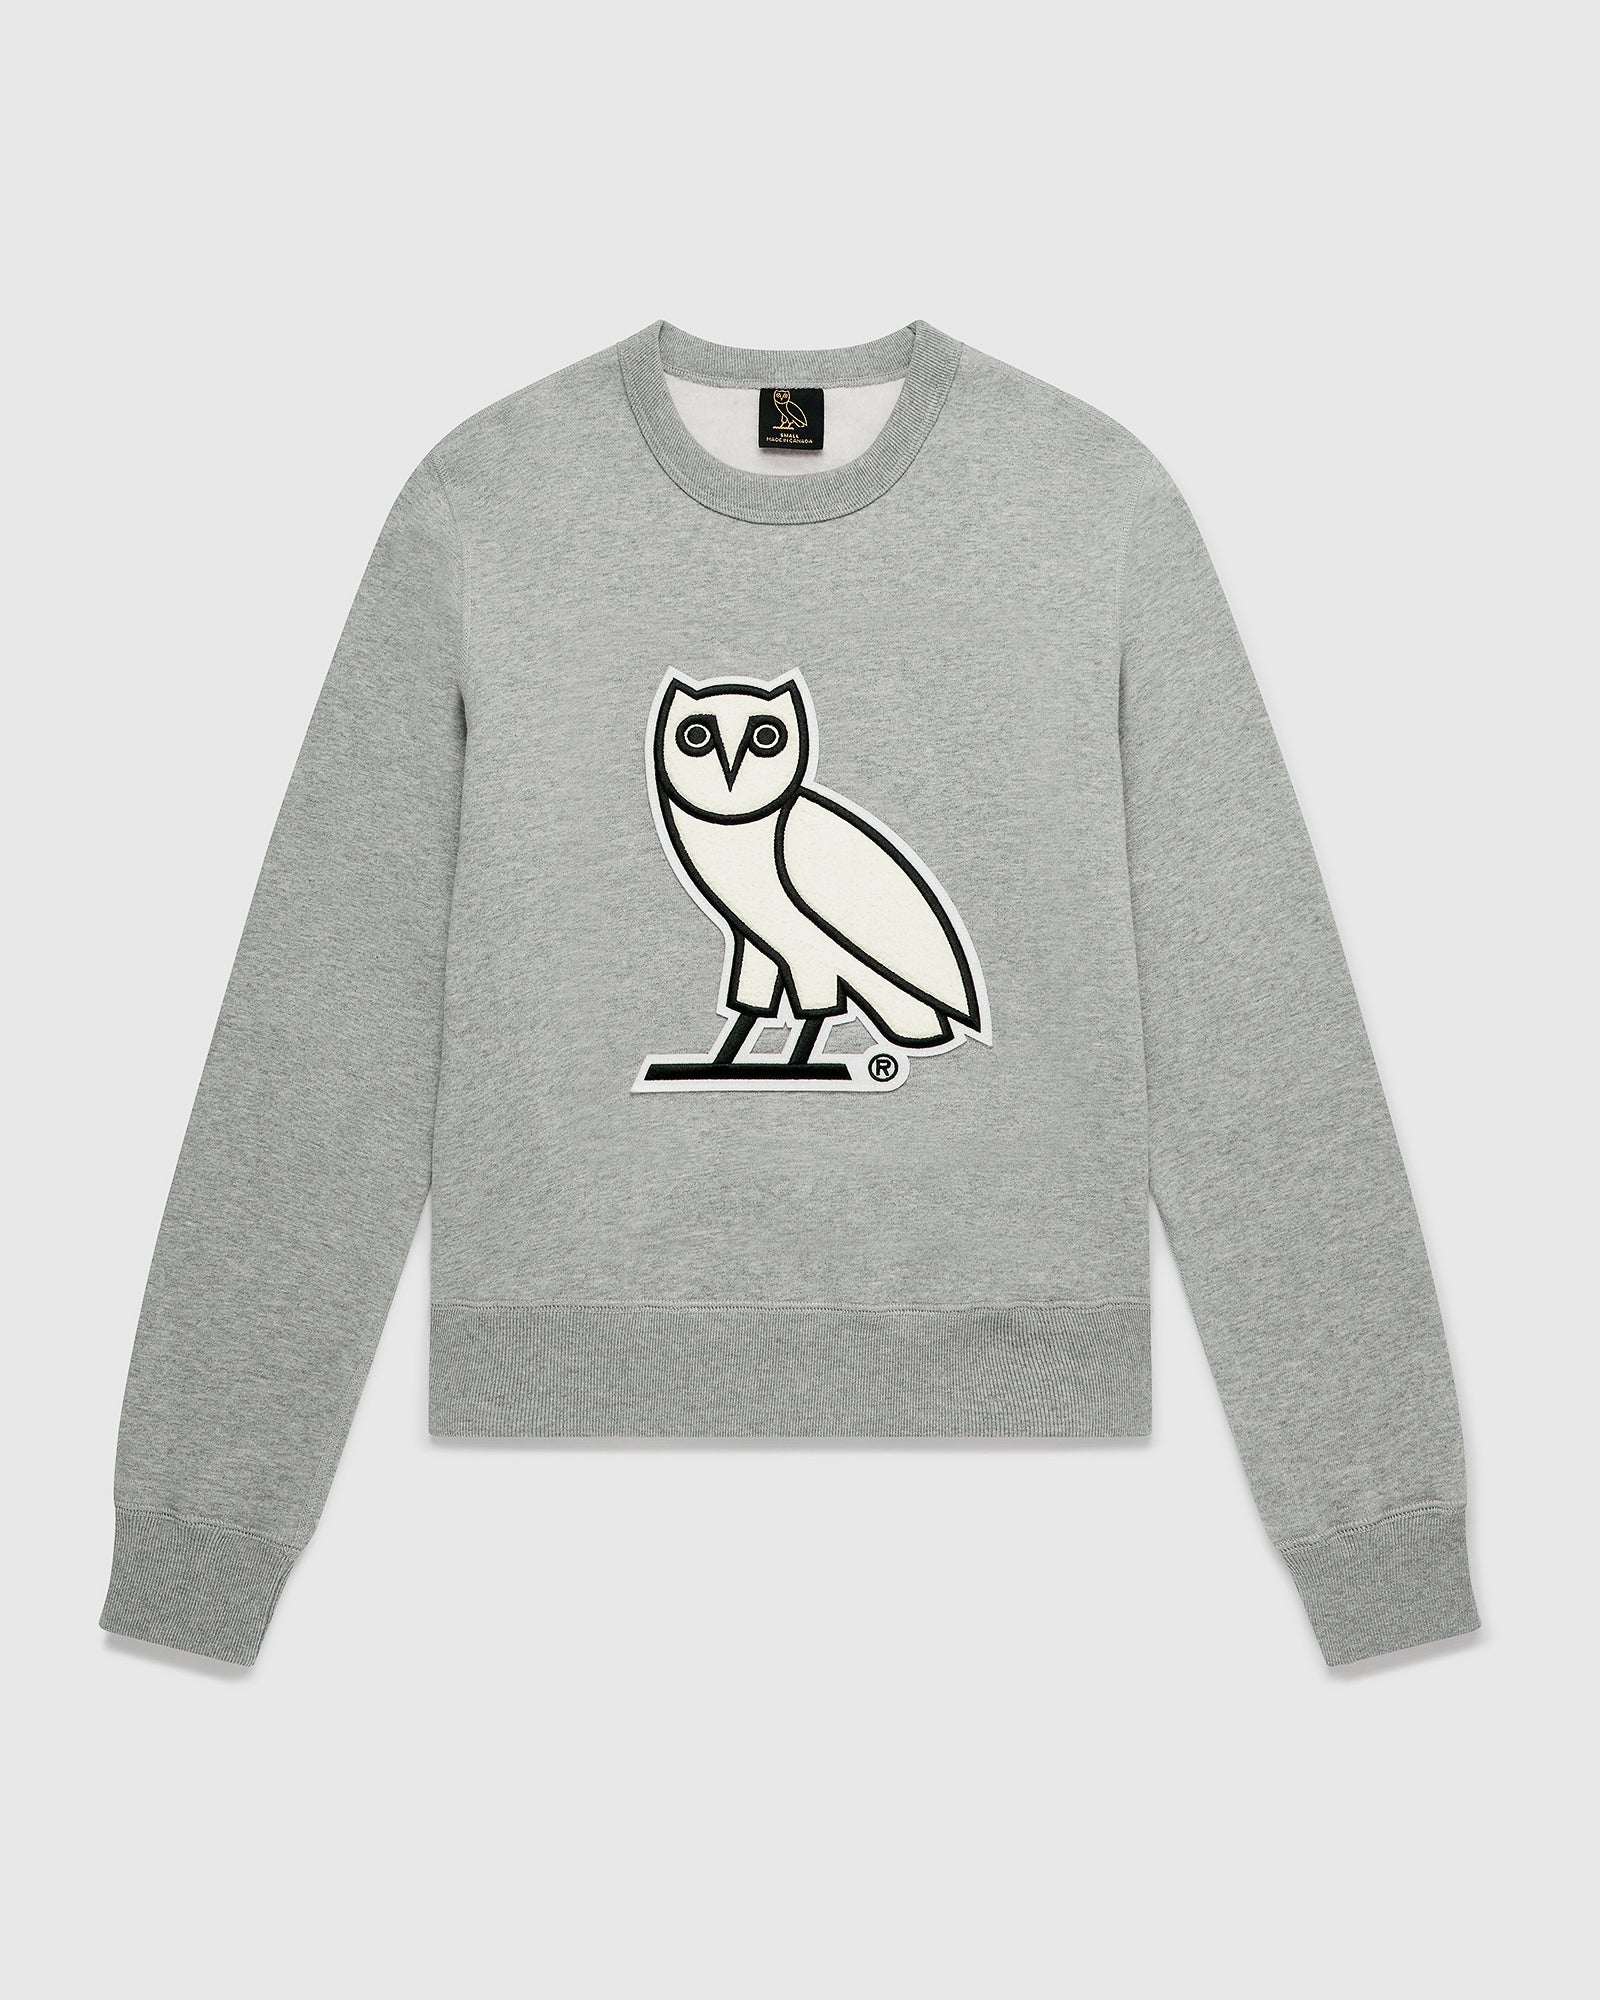 OVO CHENILLE™ WMNS CREWNECK - HEATHER GREY IMAGE #1